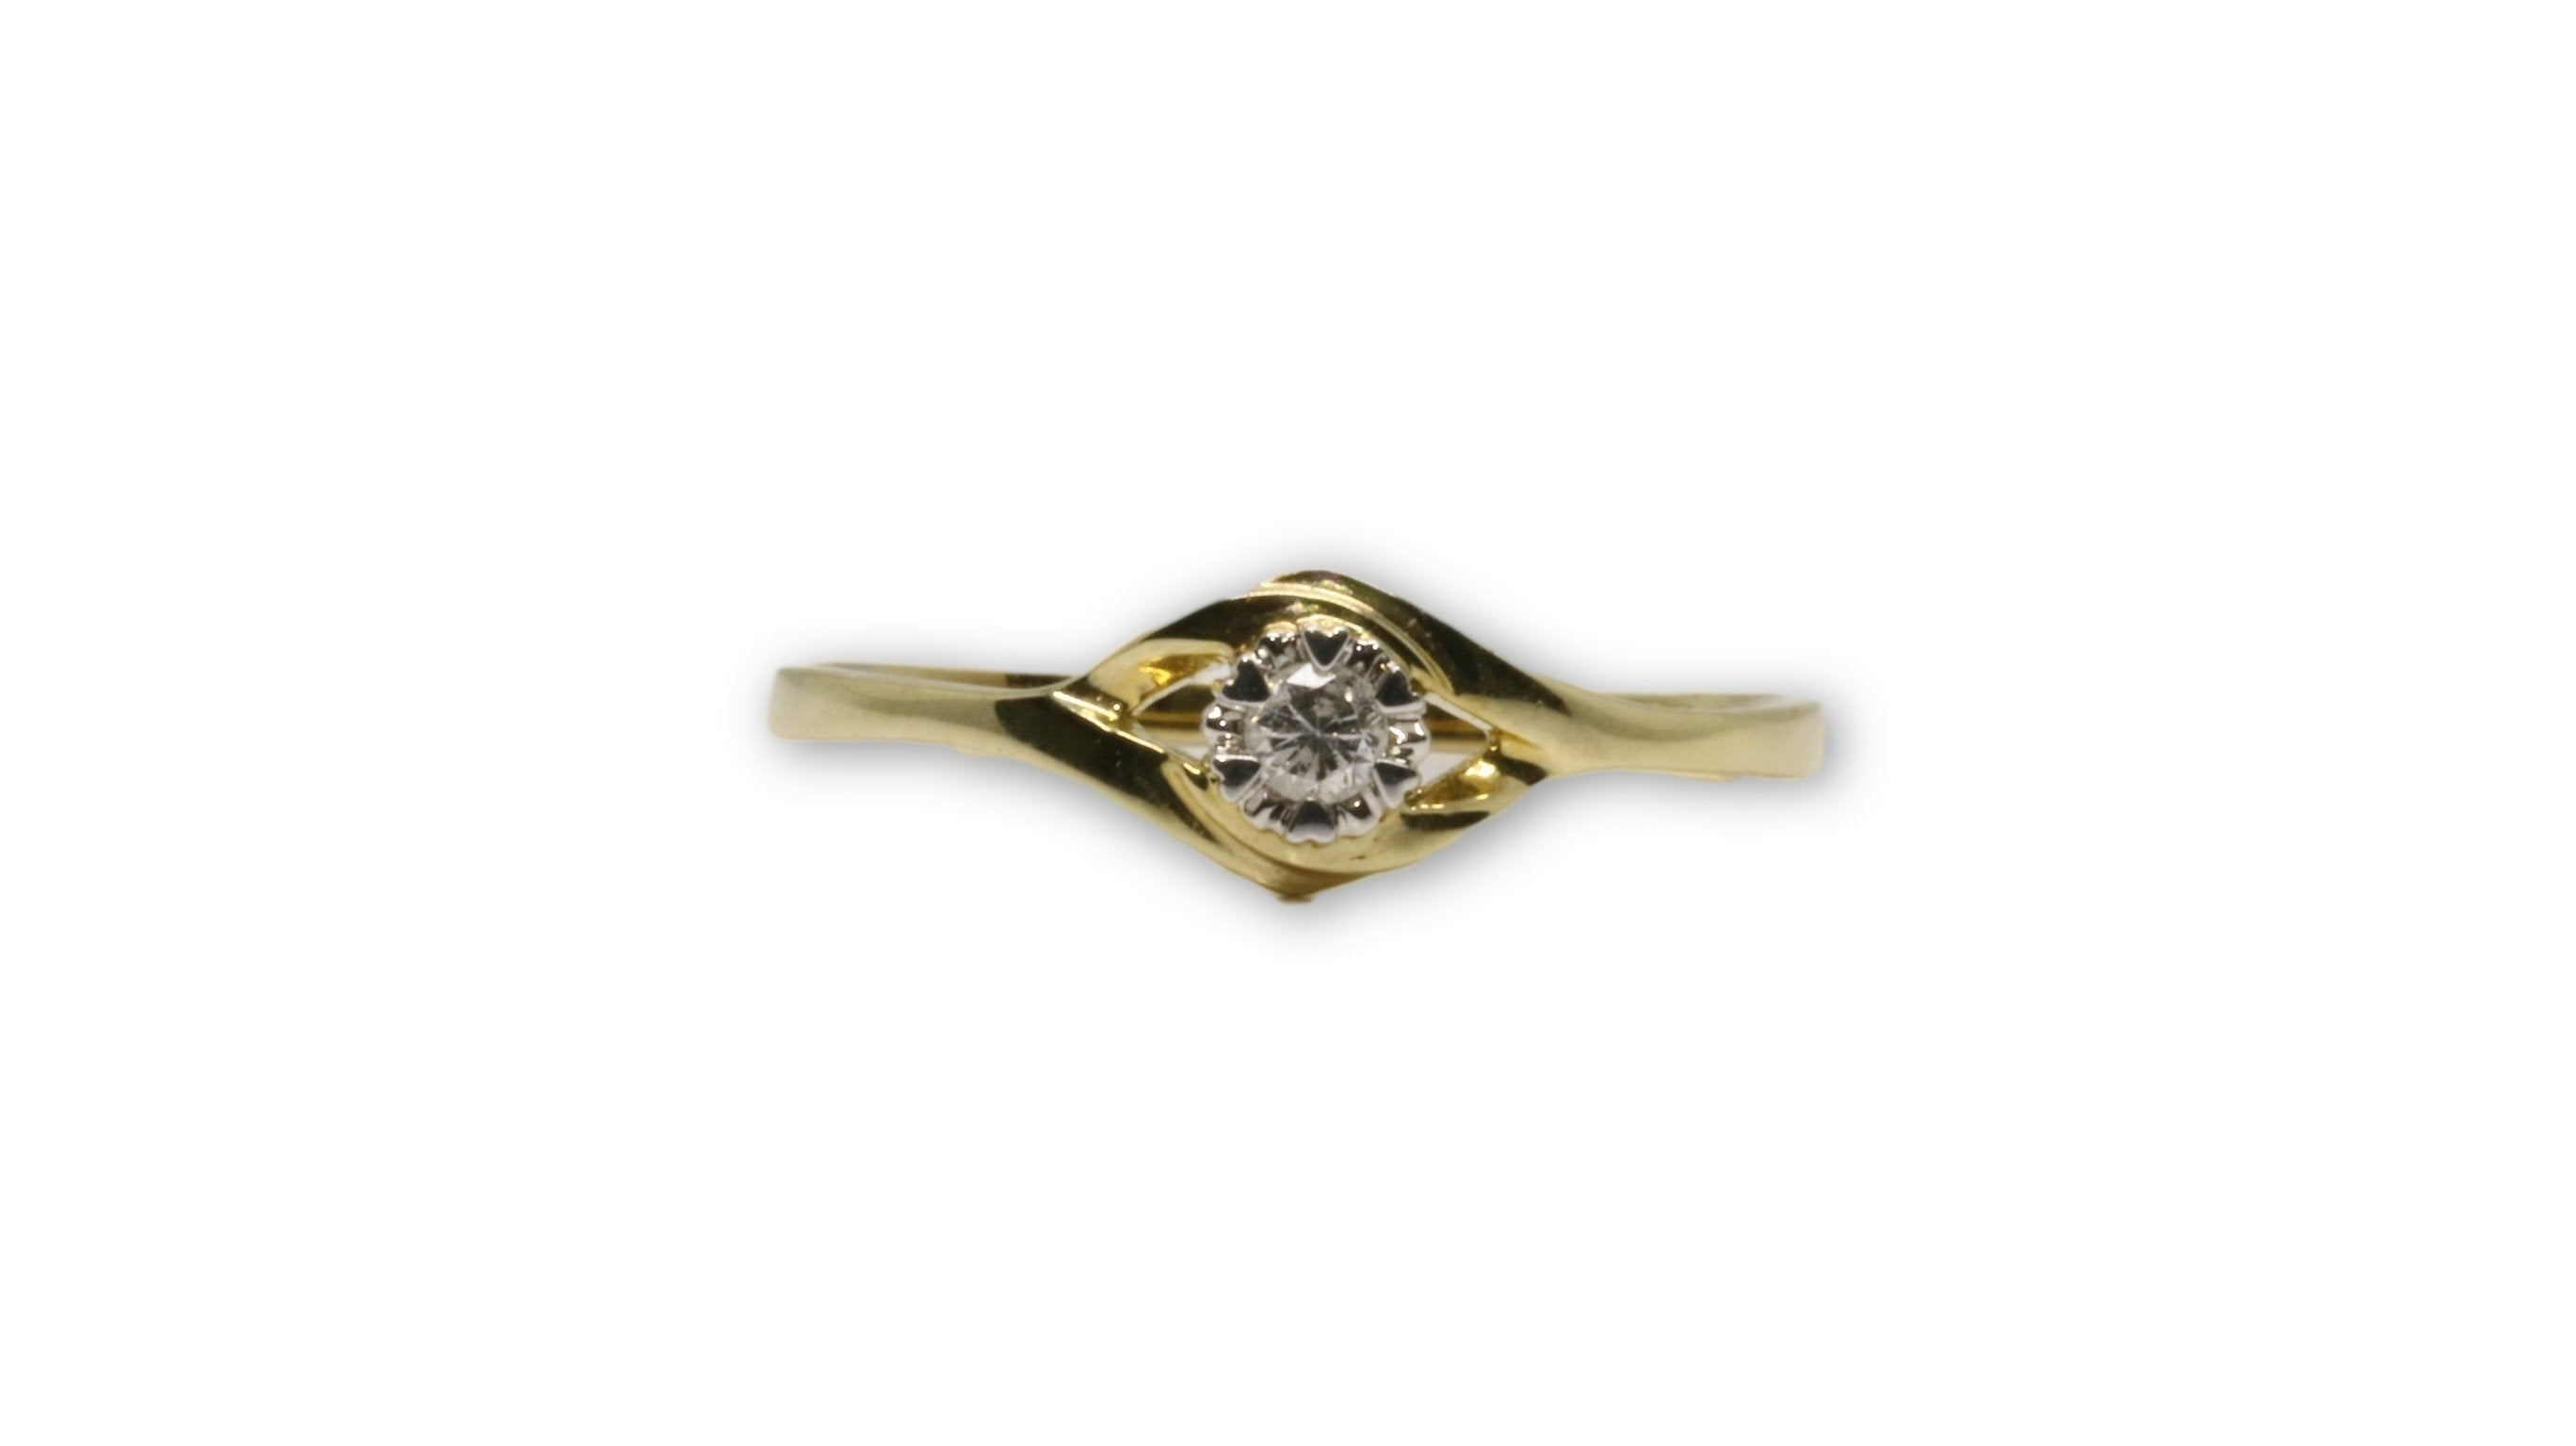 Bague Solitaire 05 0.06ct diamants en or 10K DRG-052 - orquebec